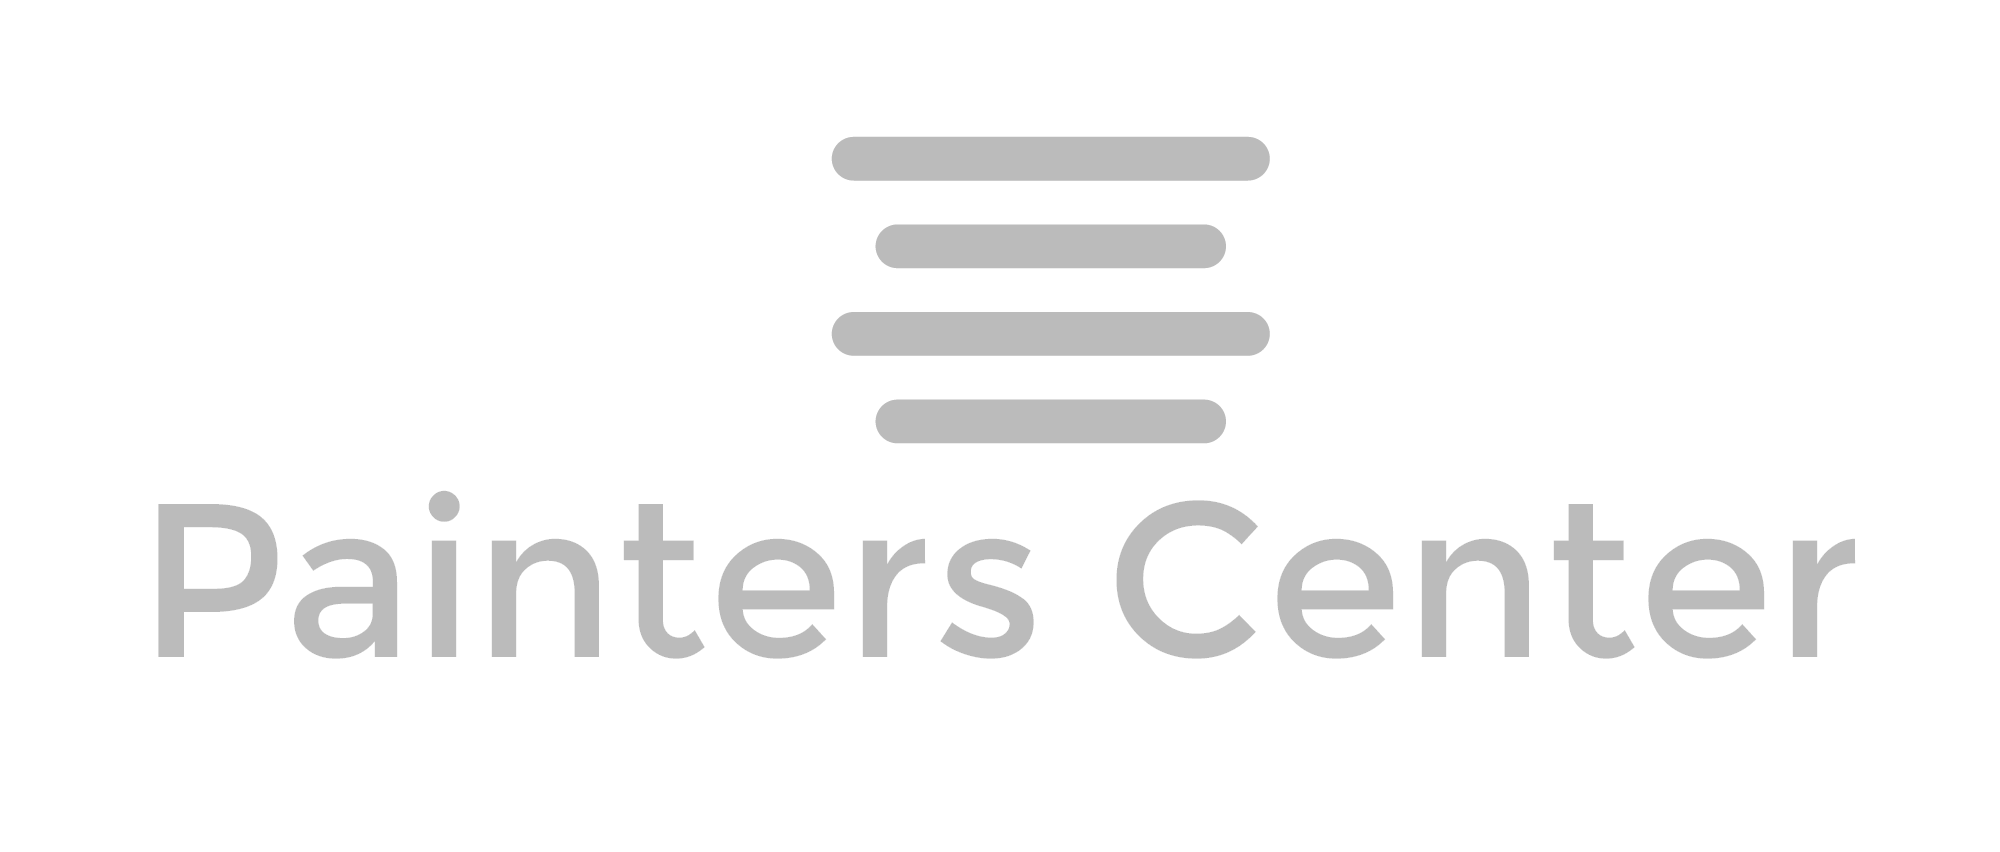 Painters Center-logo.fw.png